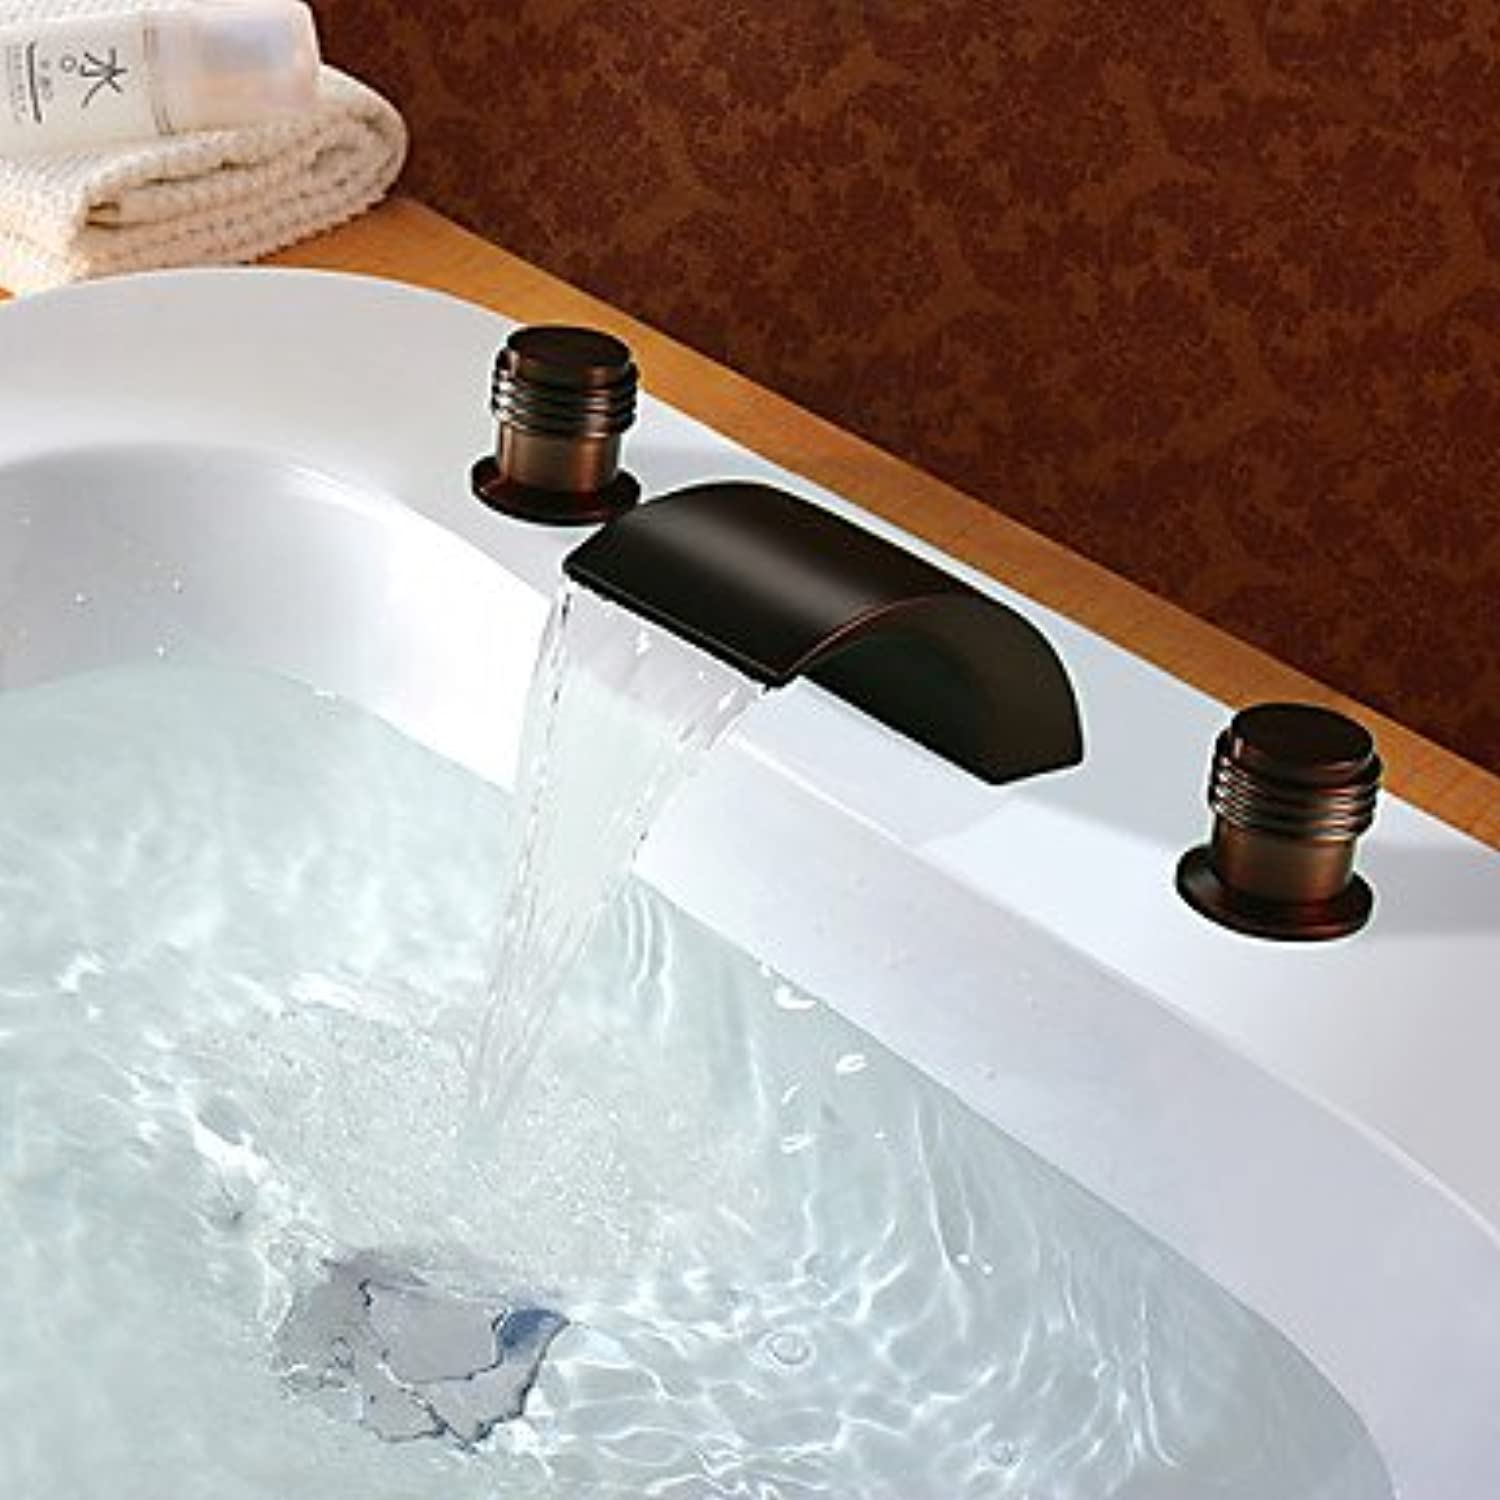 Y&M Faucet£? Oil deck inssizetion copper finish waterfall lavatory faucet or bathroom sink faucet